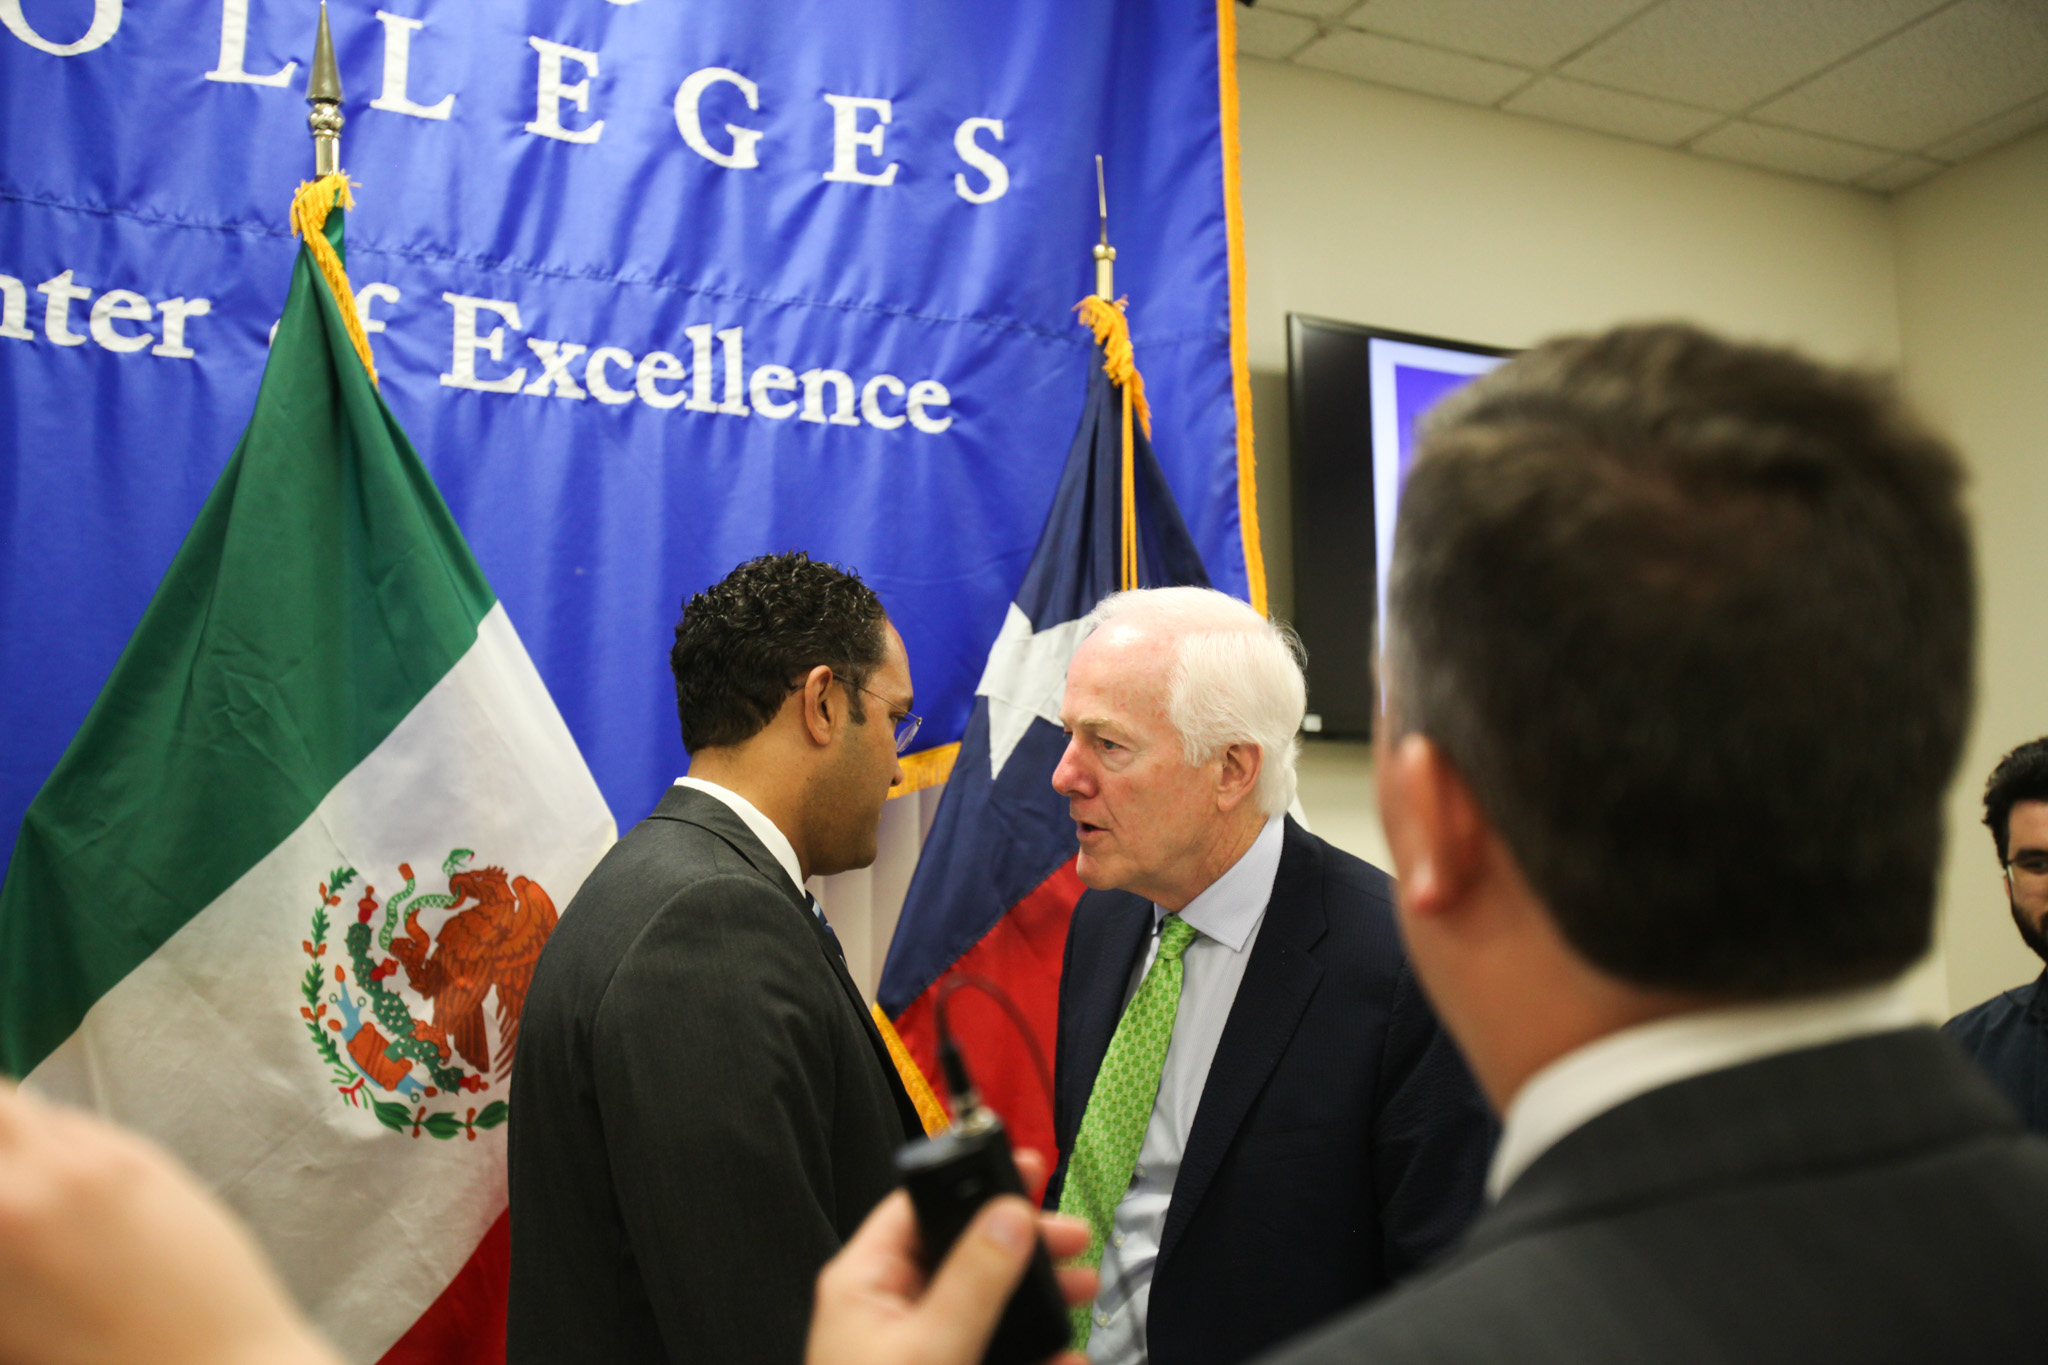 U.S. Sen. John Cornyn (left) speaks quietly with U.S. Rep. Will Hurd (D23) before the panel on Texas and Mexico relations.